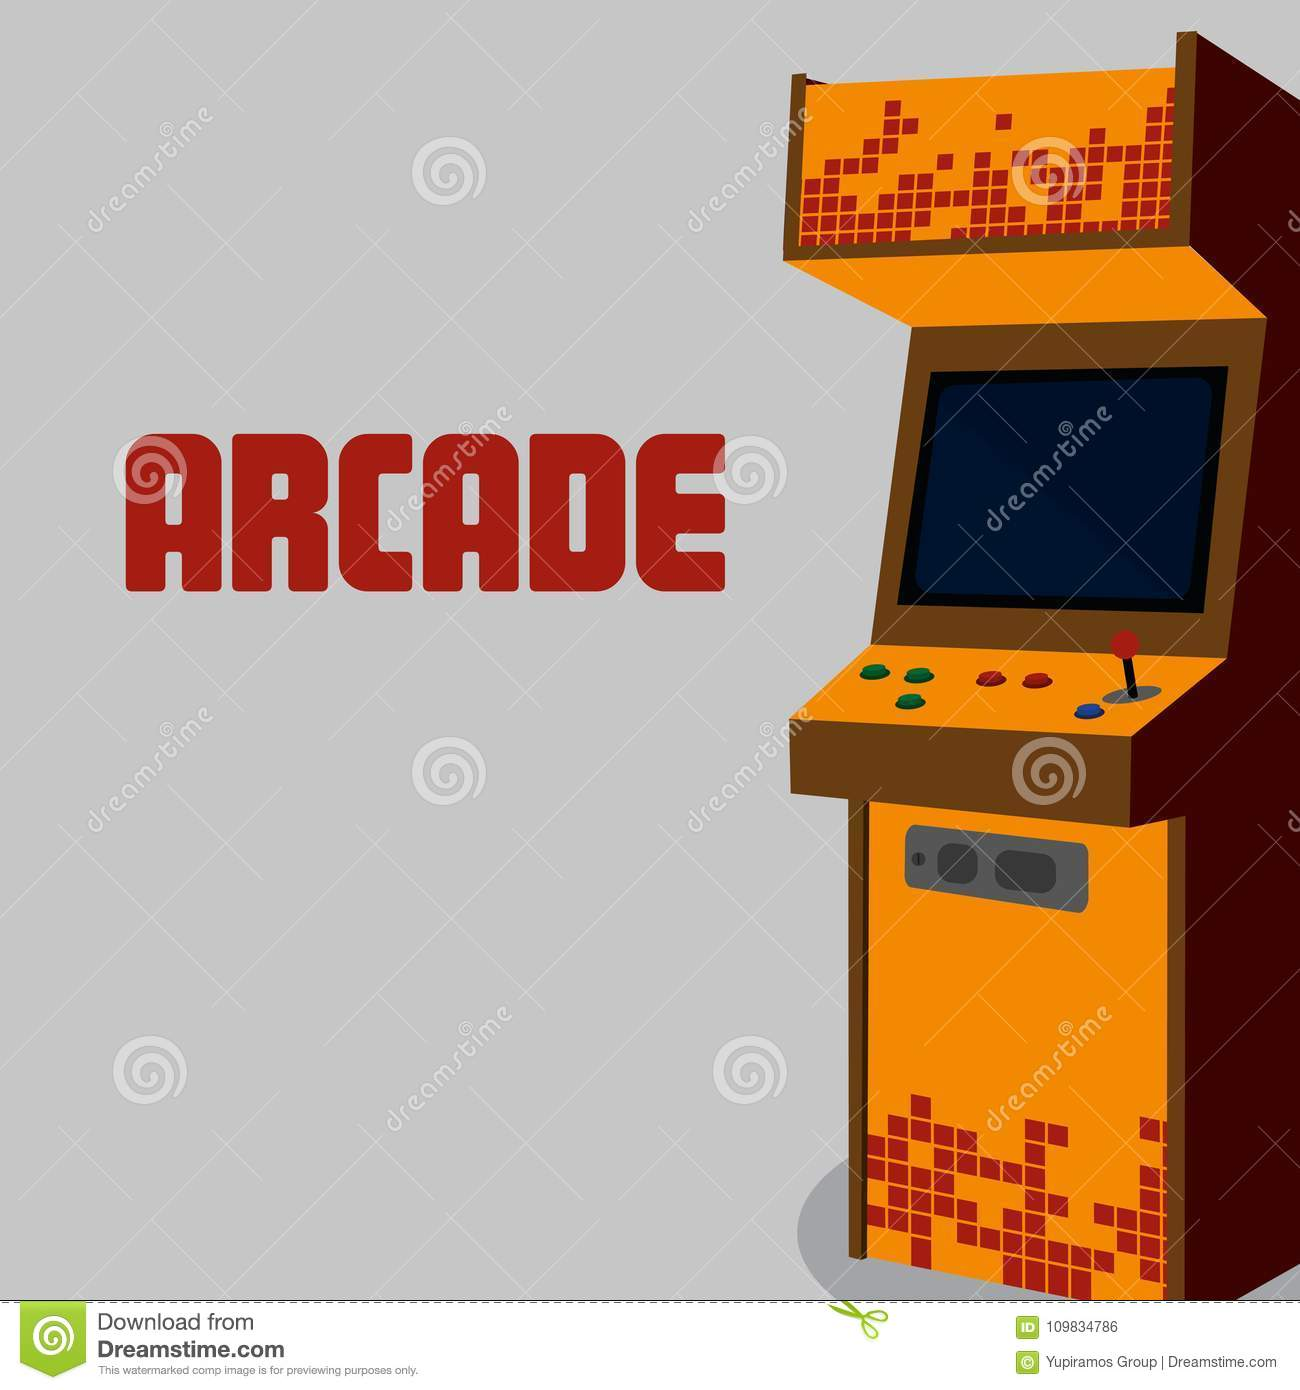 Arcade machine design stock vector. Illustration of home - 109834786